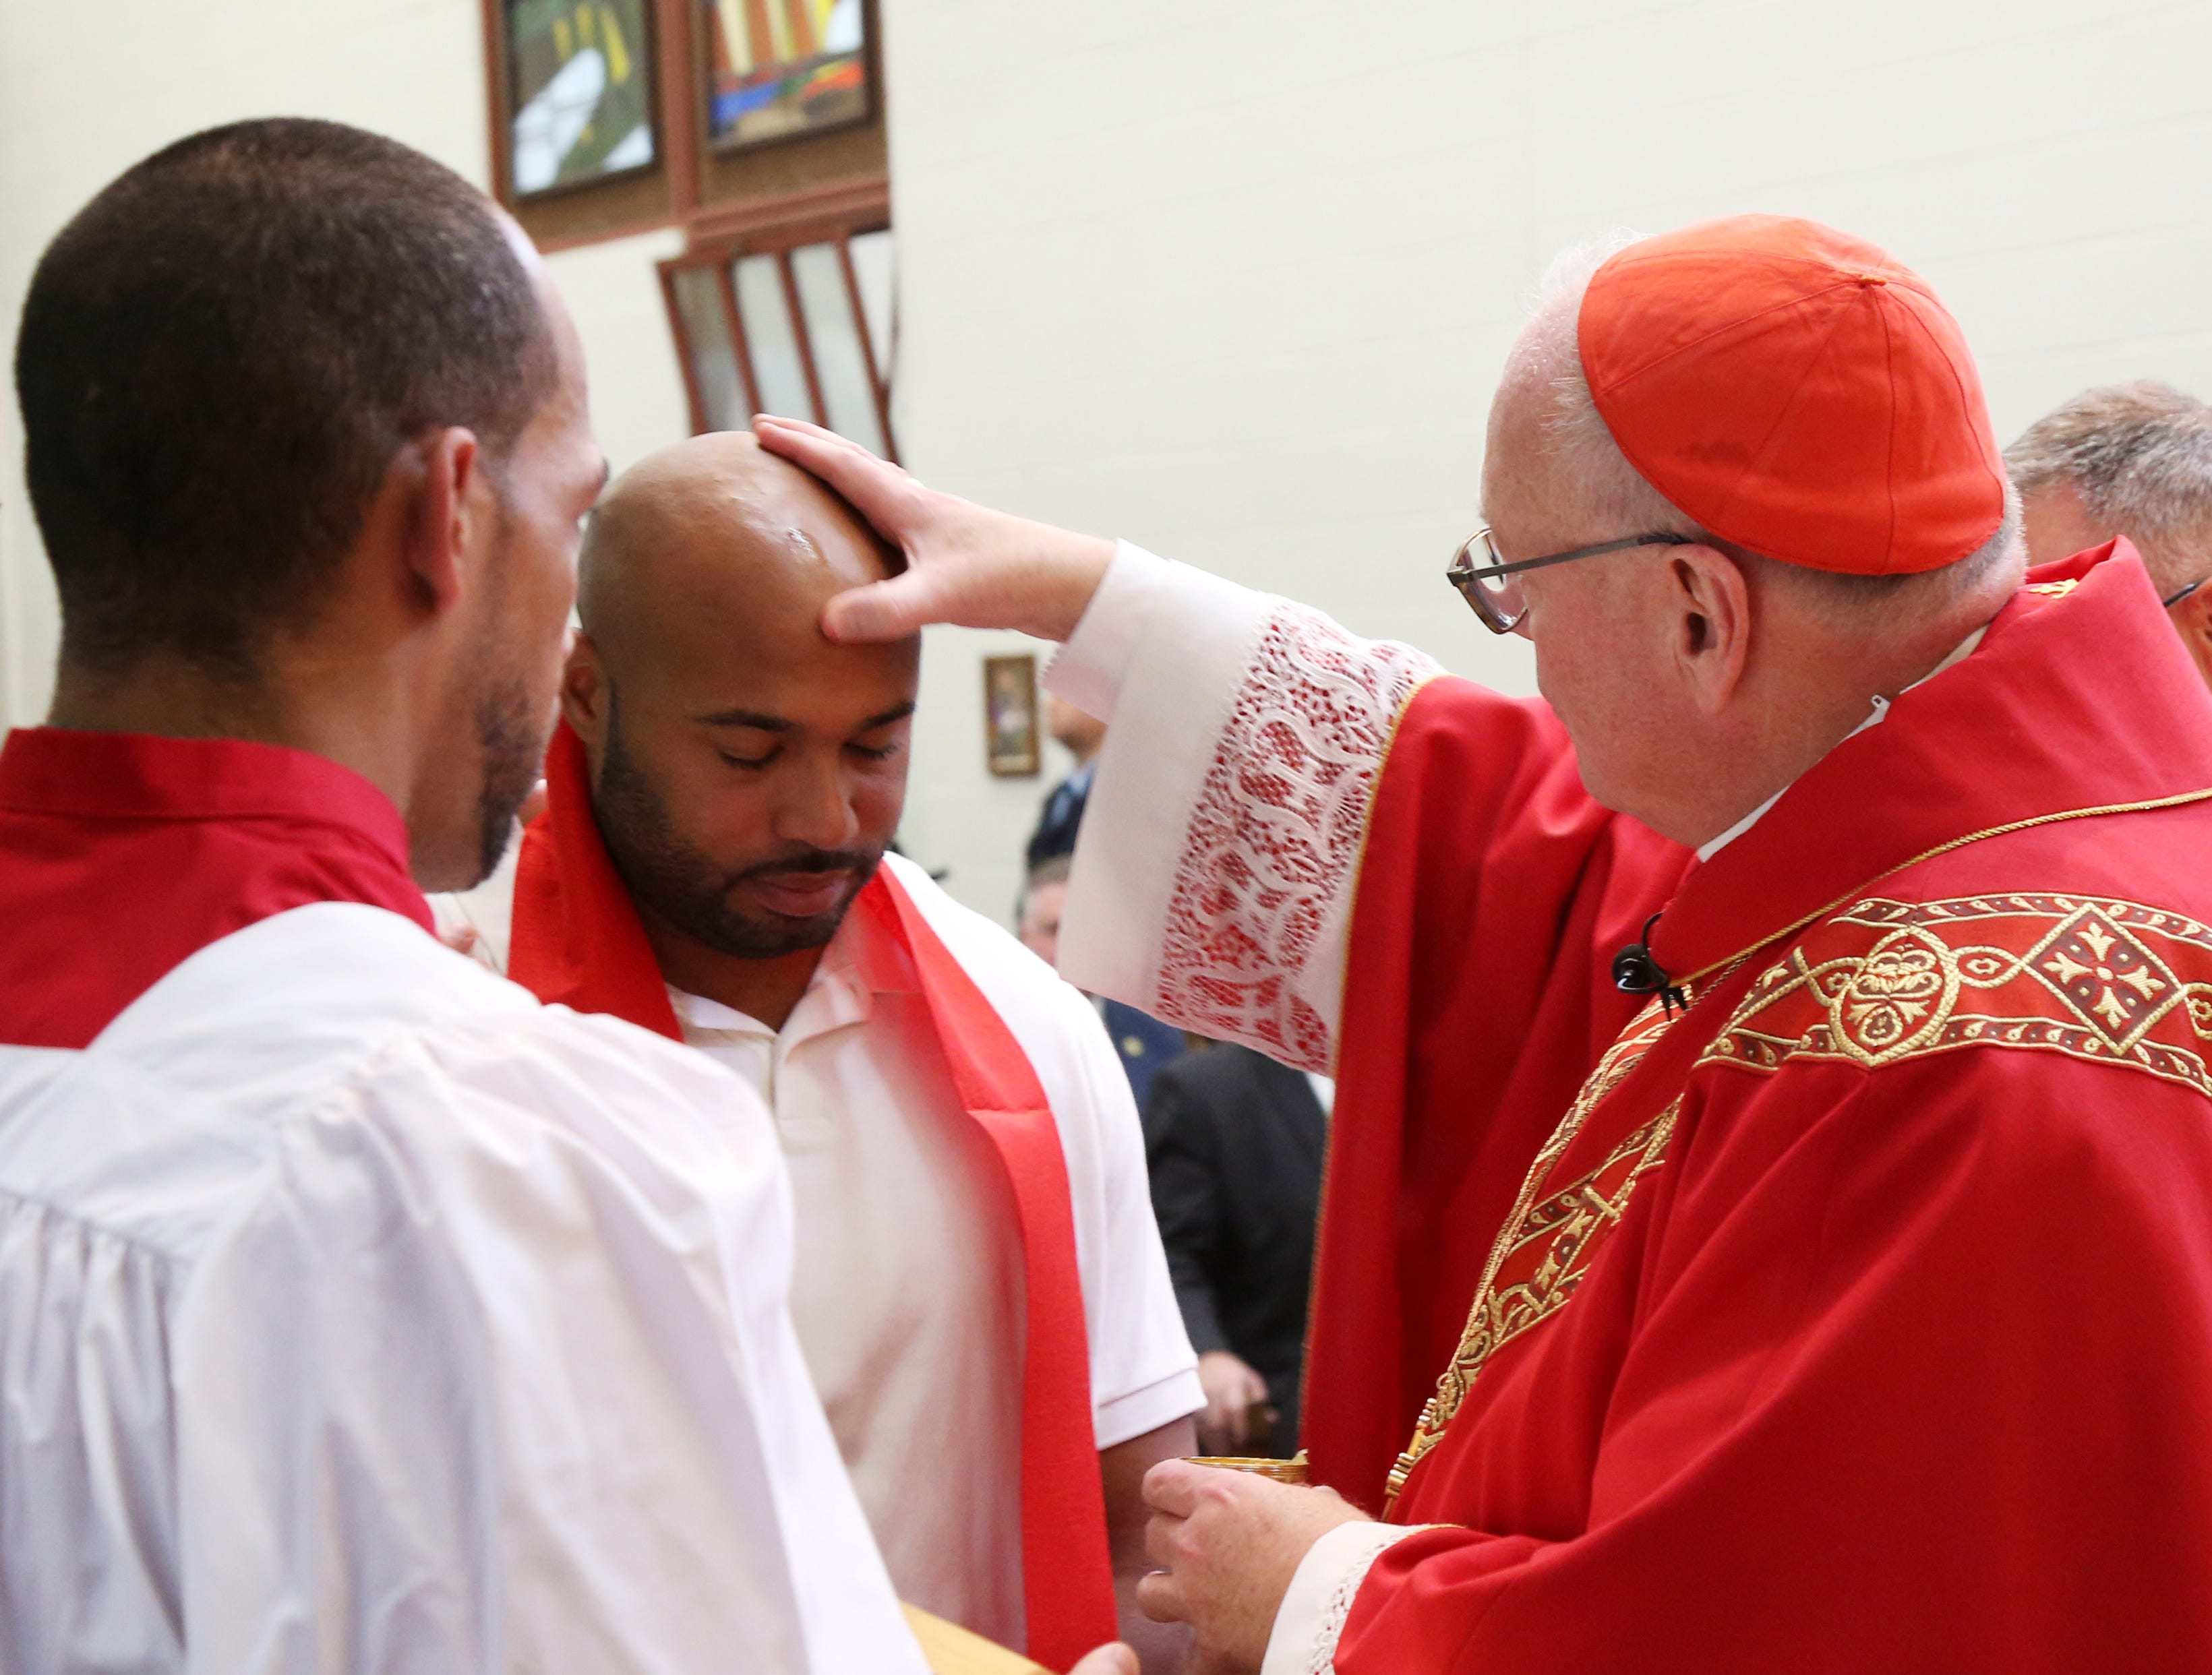 Patrick G. Smith receives the sacarment of Confirmation from Cardinal Timothy Dolan at Shawangunk Correctional Facility in Wallkill on November 19, 2018.